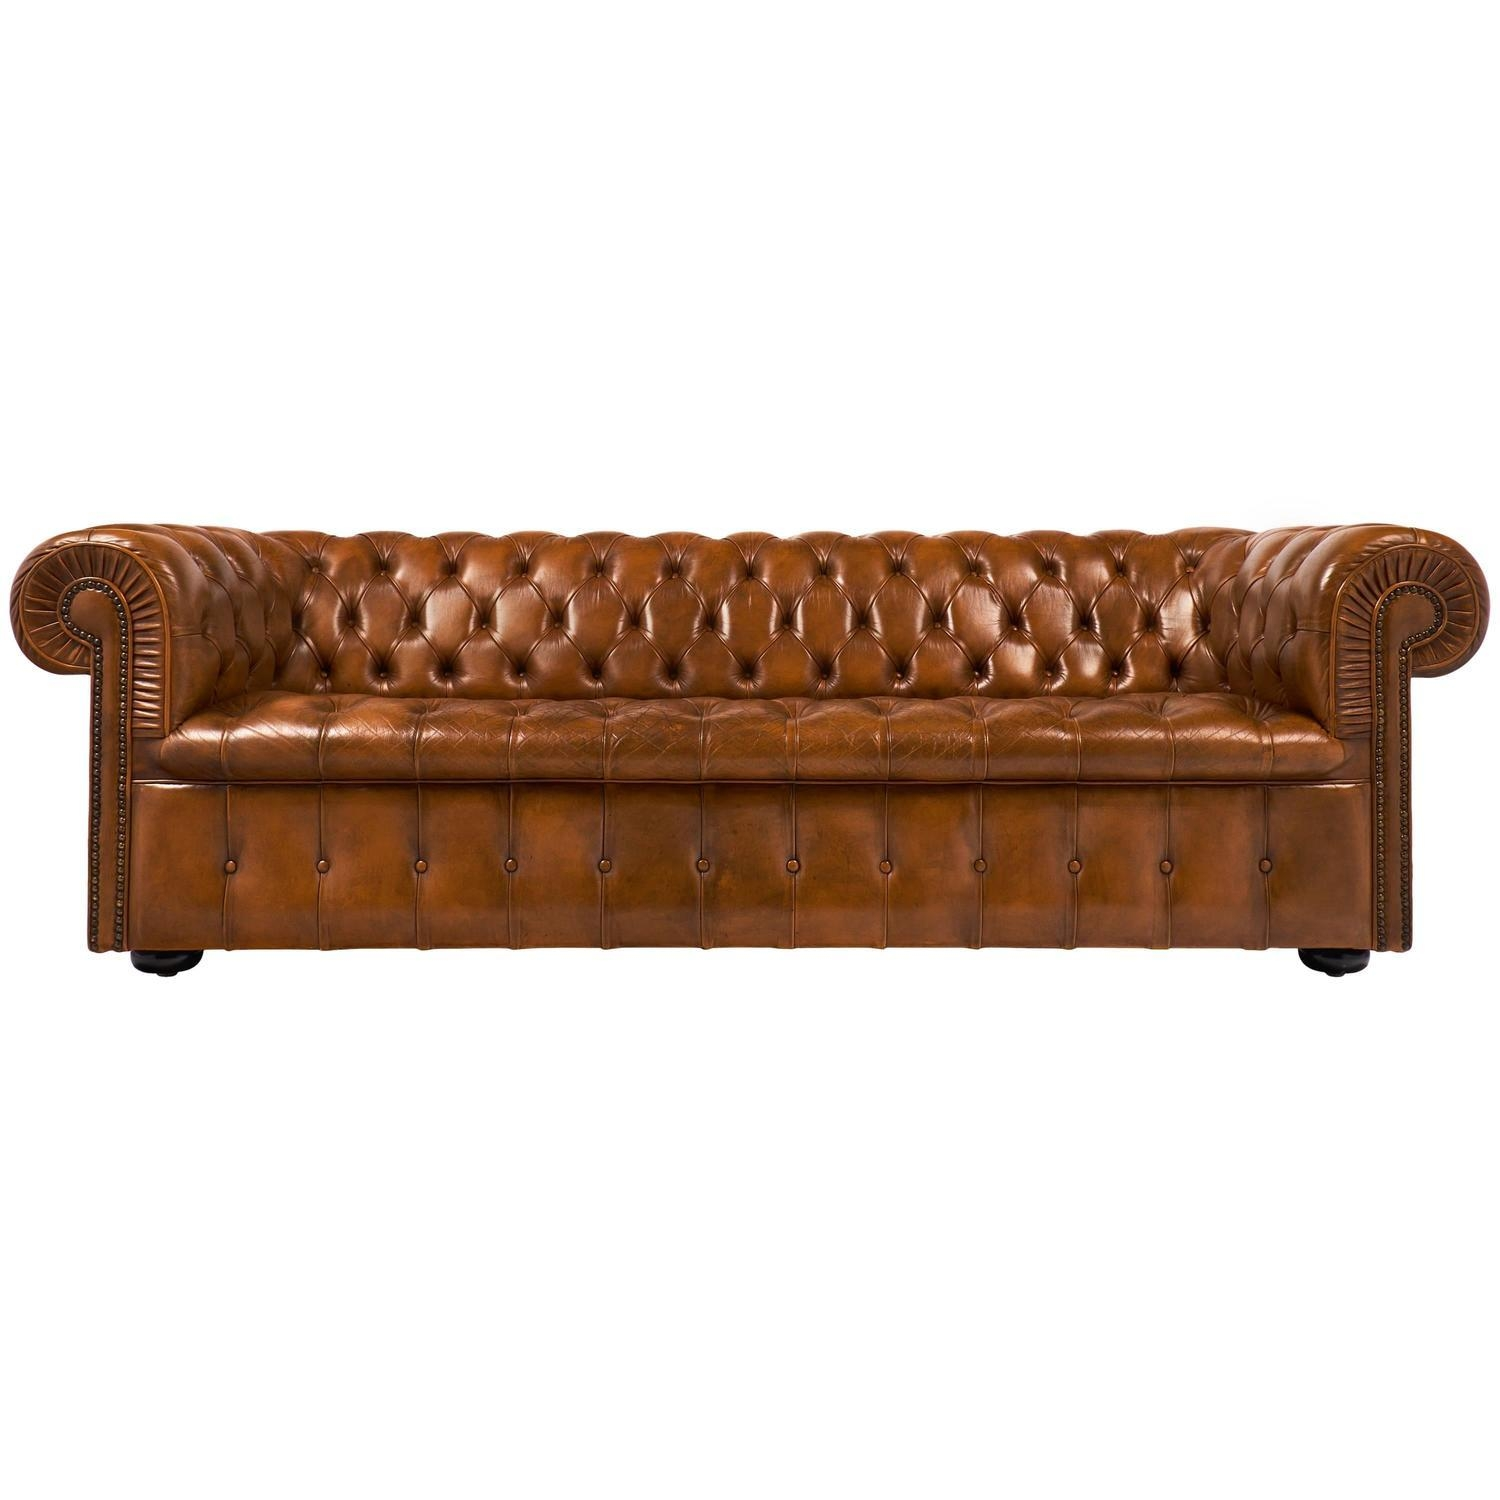 Vintage English Cognac Leather Chesterfield Sofa At 1Stdibs with Red Leather Chesterfield Sofas